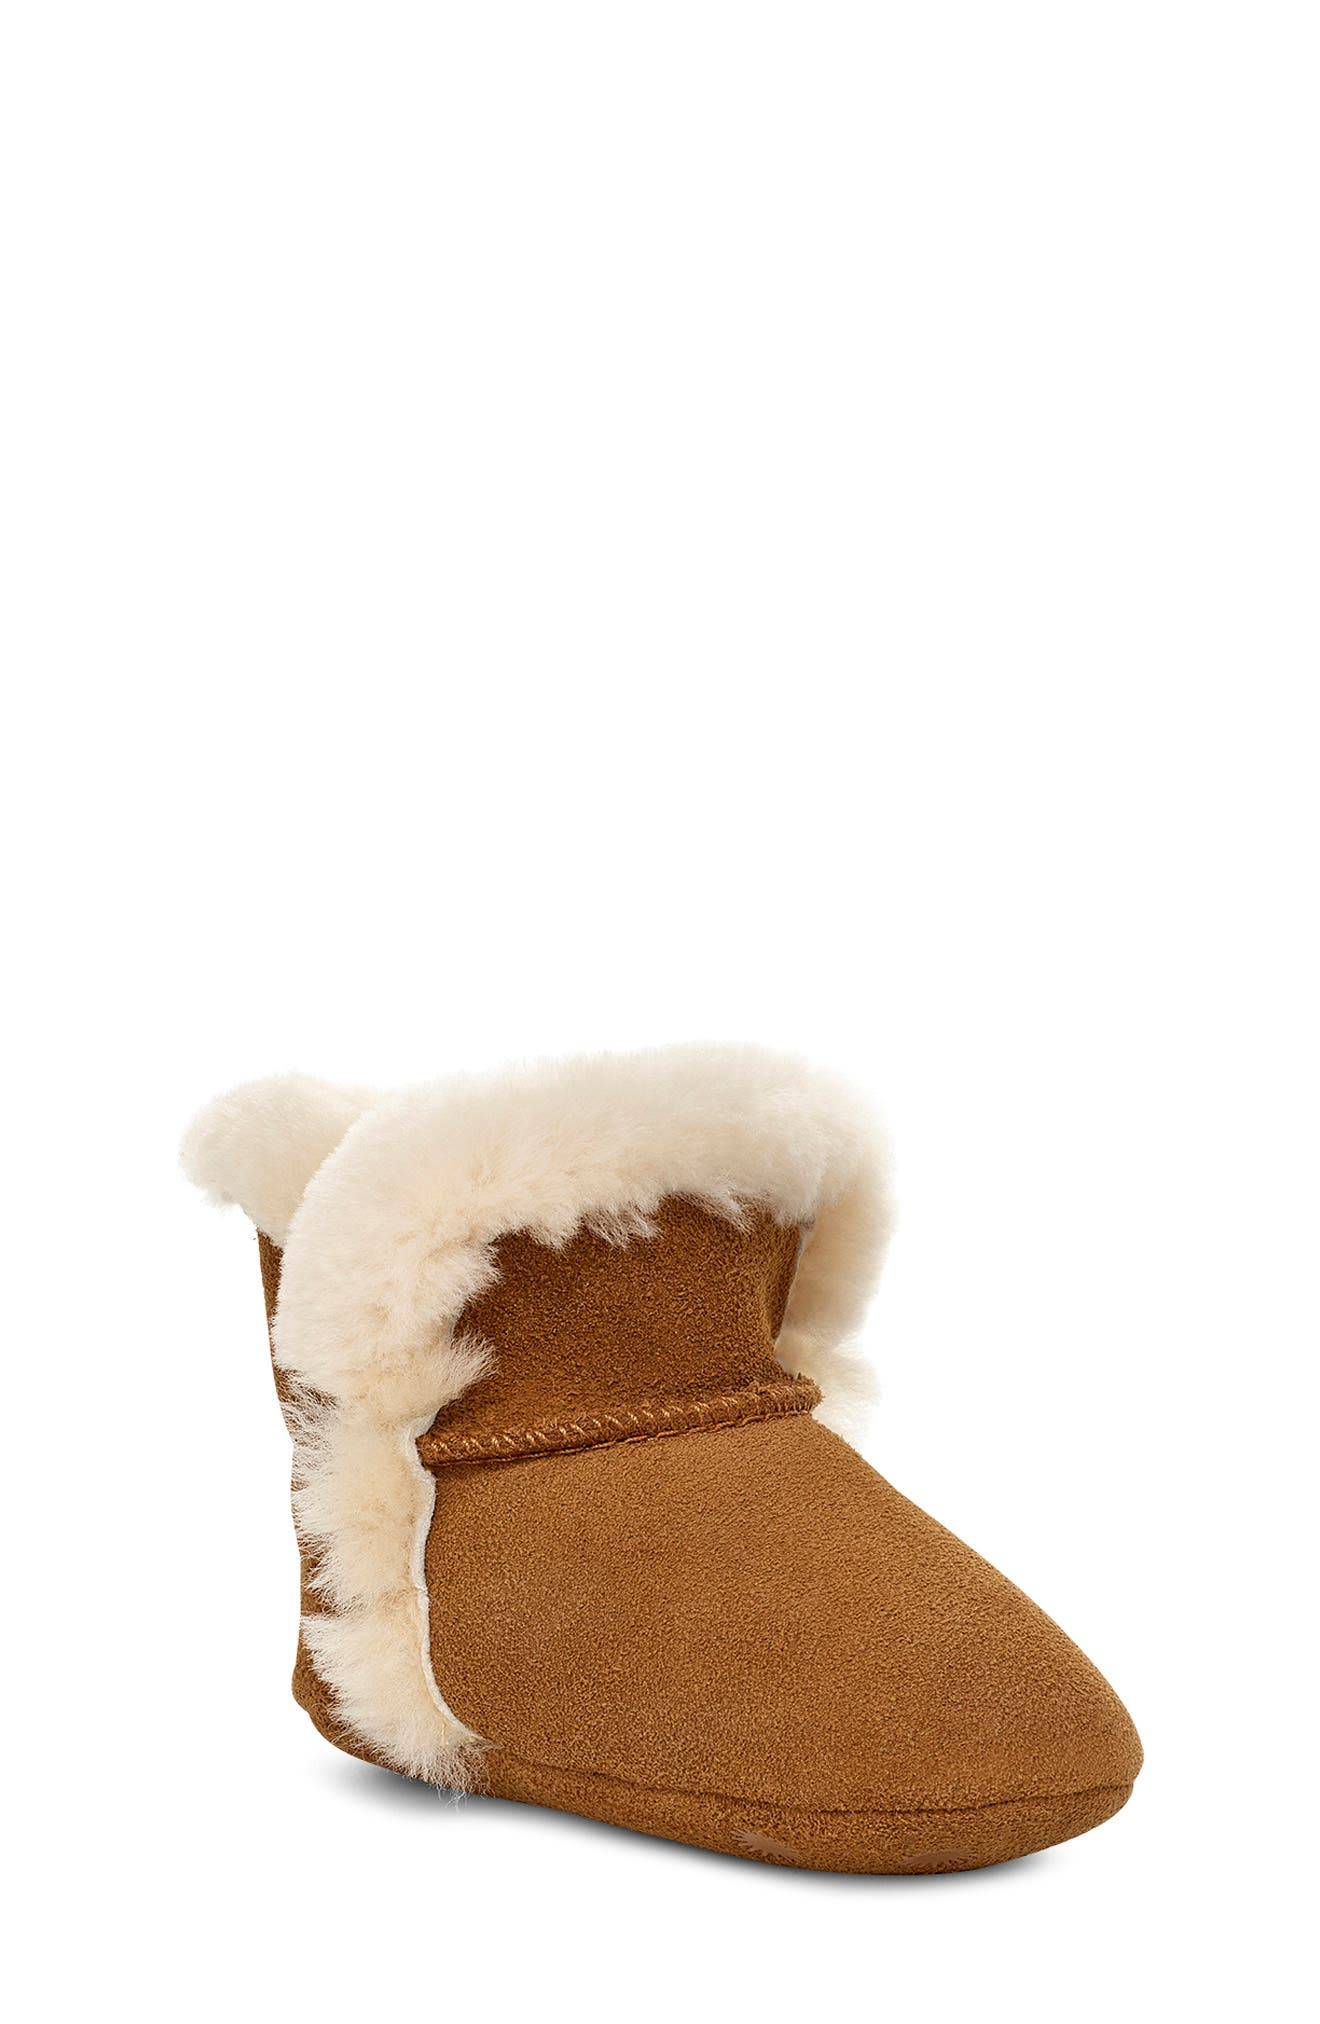 Image of UGG Lassen Genuine Shearling Crib Shoe